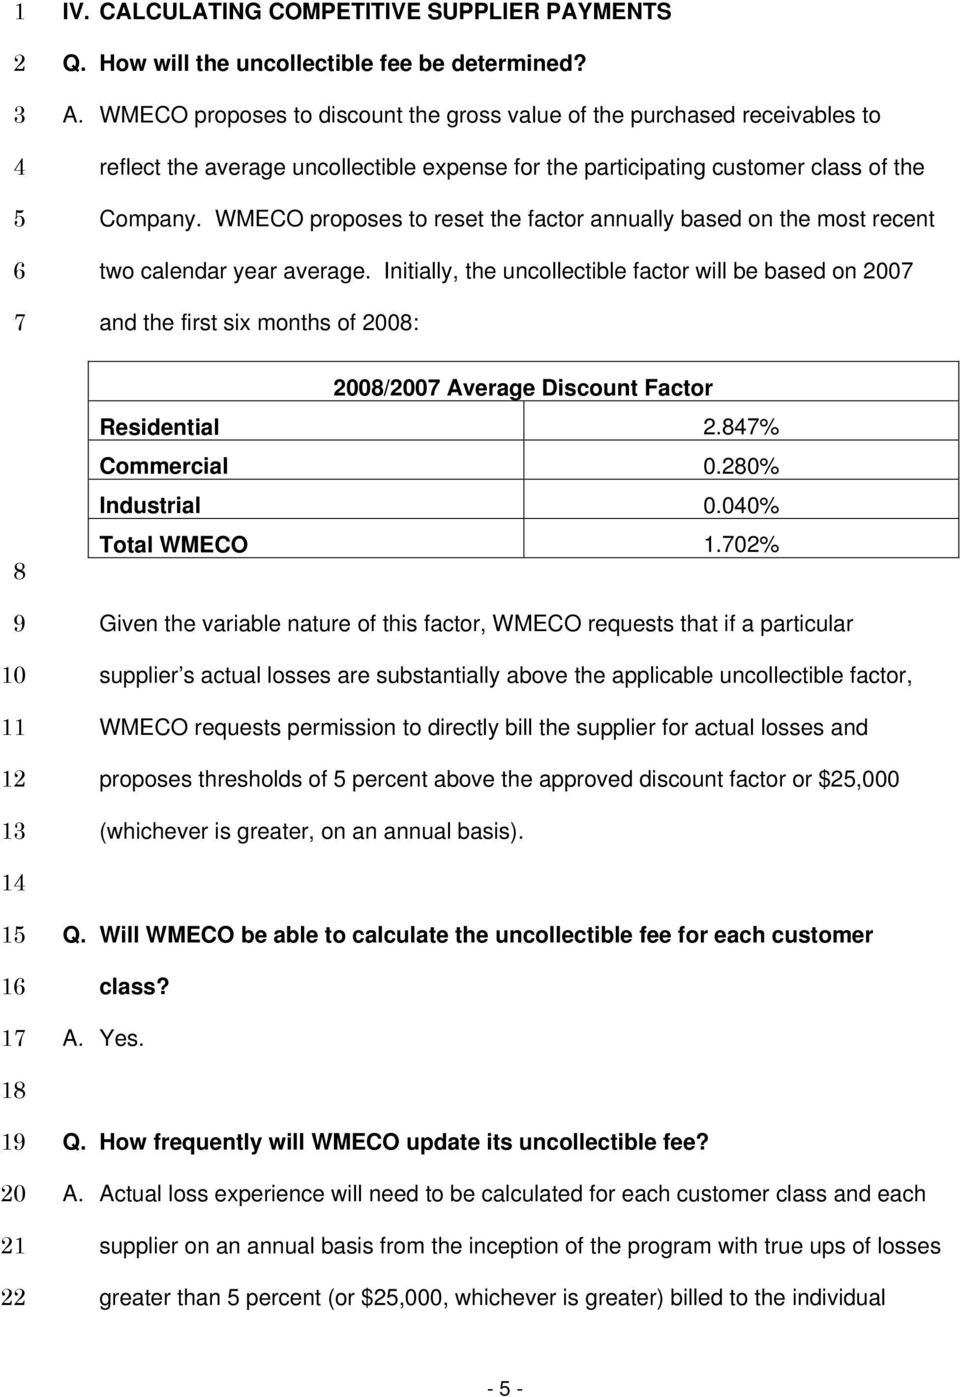 WMECO proposes to reset the factor annually based on the most recent two calendar year average.